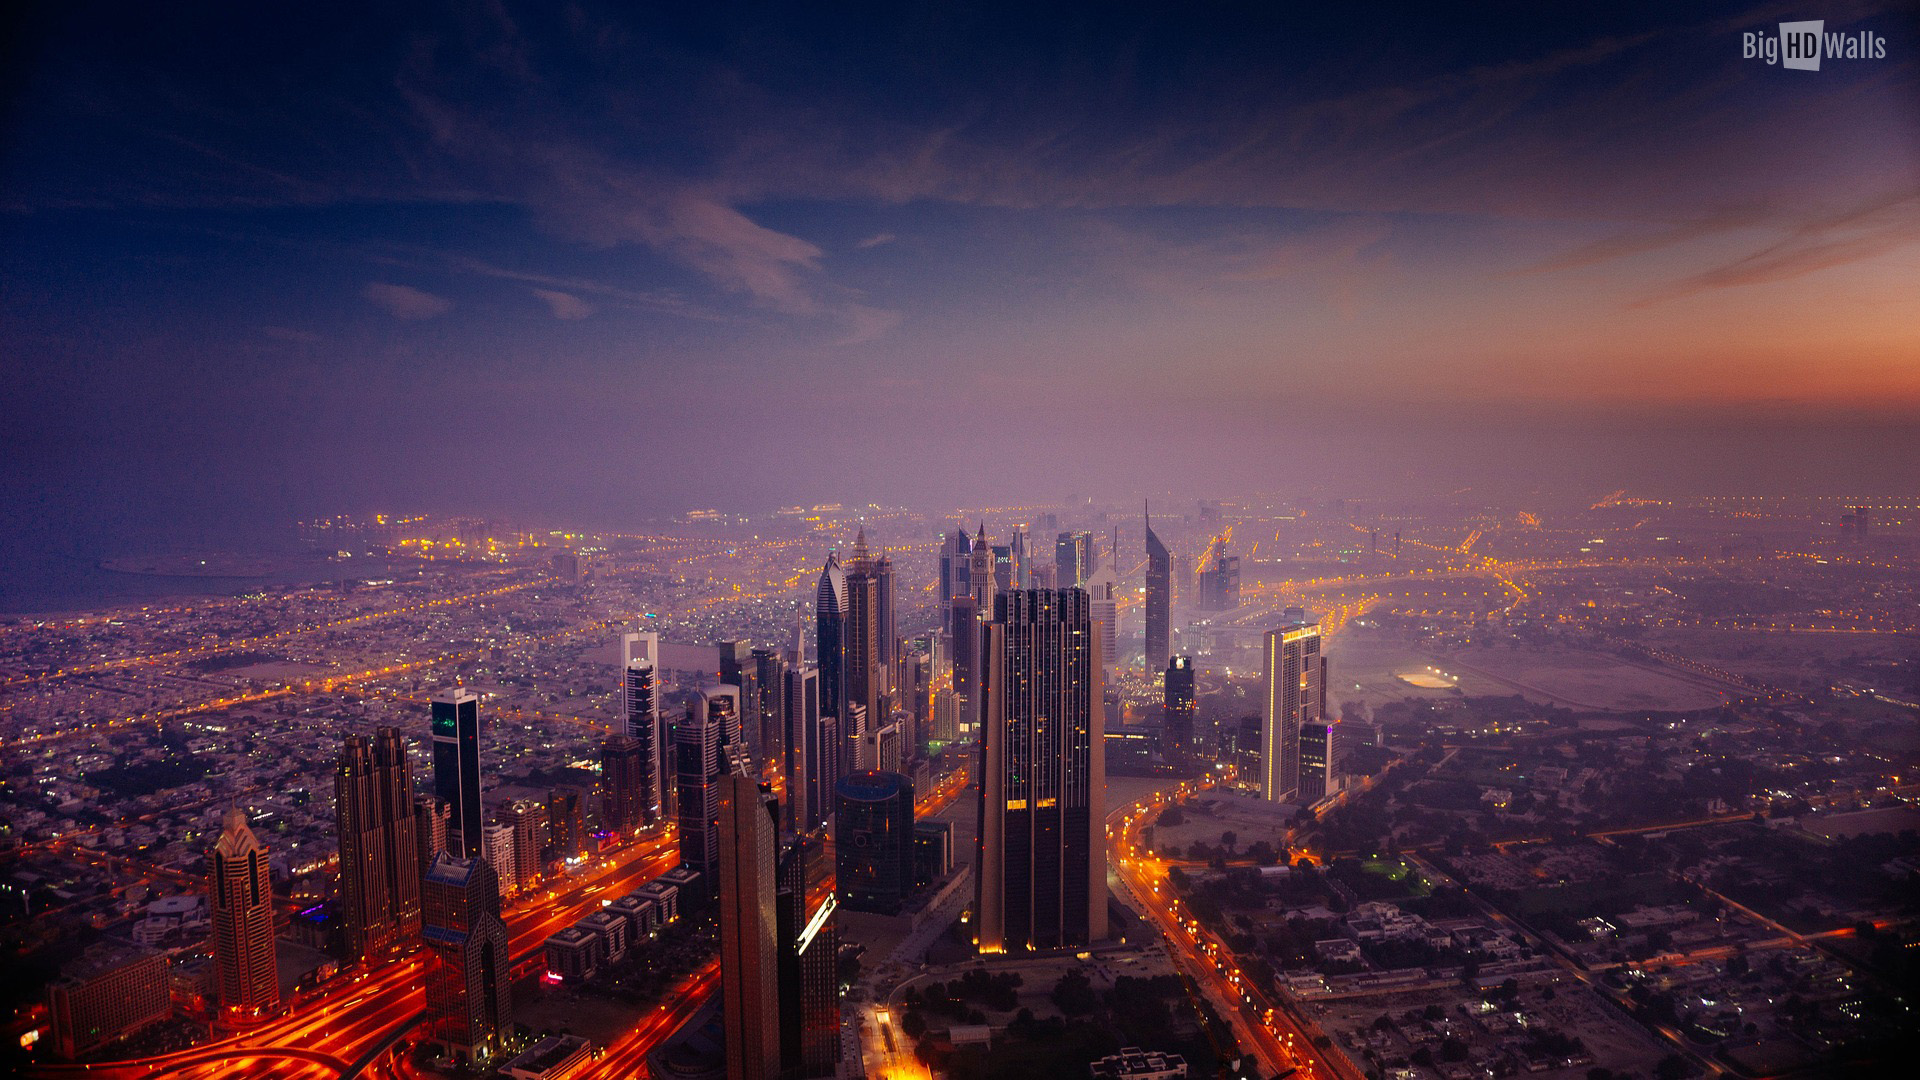 Cityscape from above HD Wallpaper | BigHDWalls